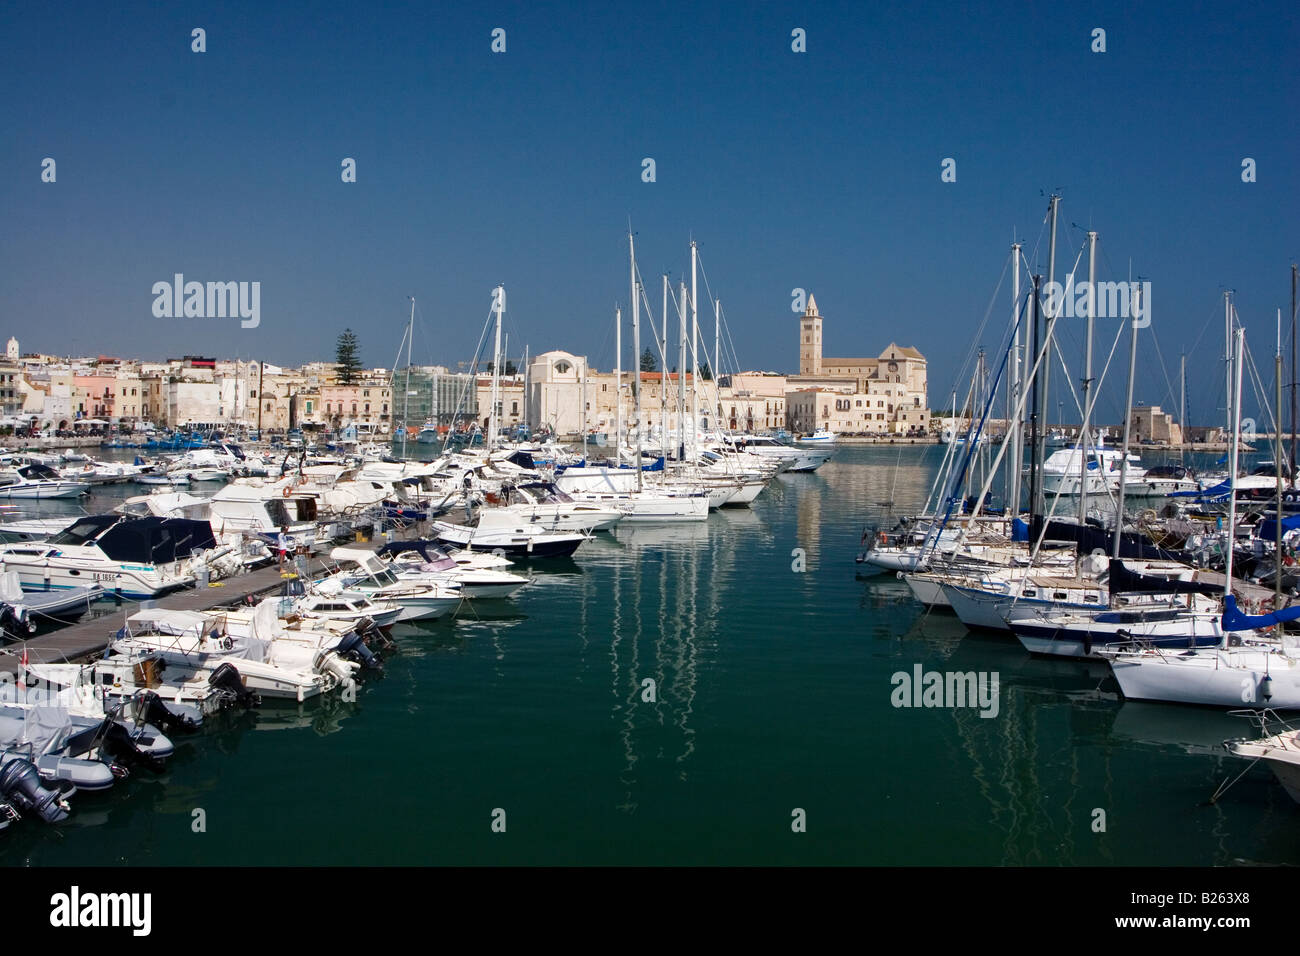 Boats are moored in the marina in front of the cathedral in Trani, Italy. - Stock Image